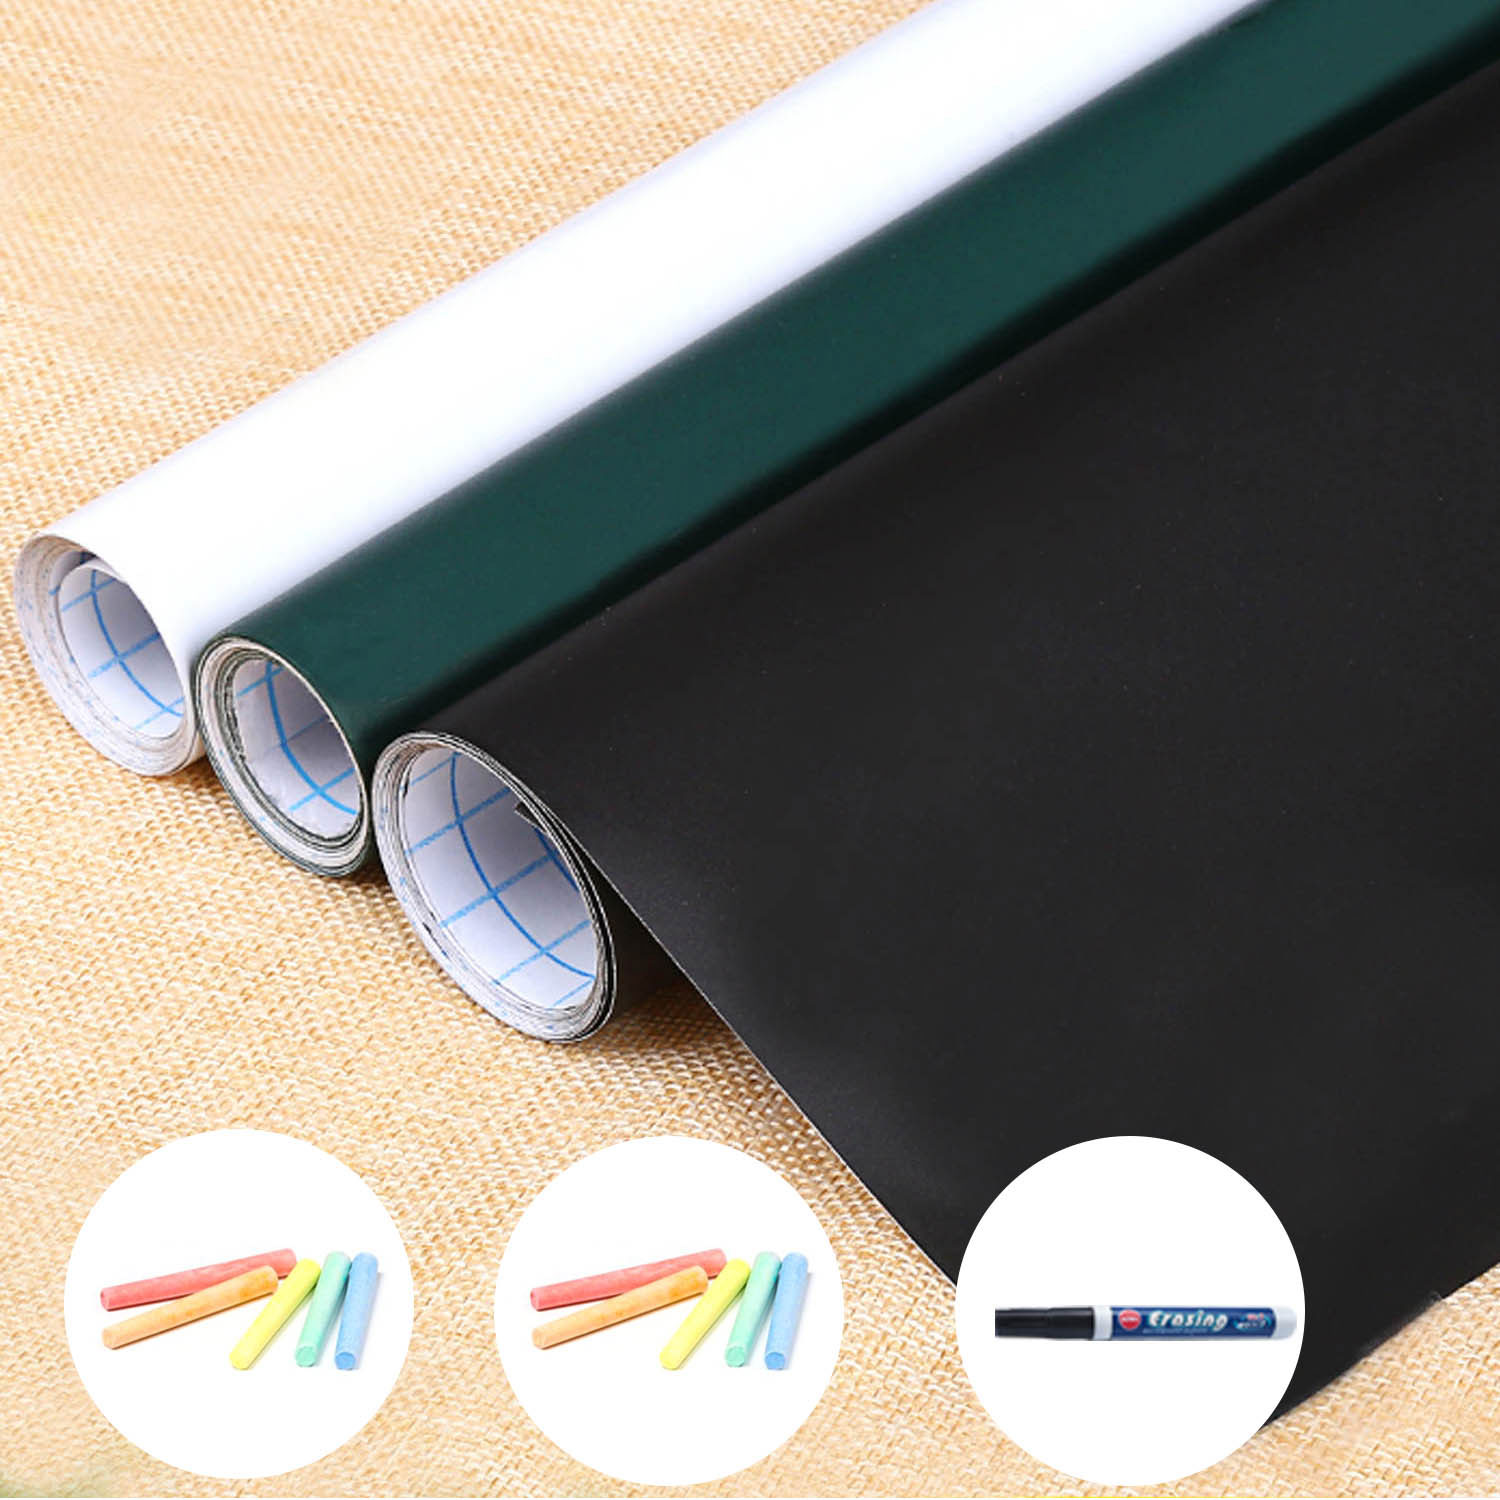 60x200cm Self-Adhesive Removable Blackboard Convenient Message Board Wall Paper Decal Sticker for Office School Supplies